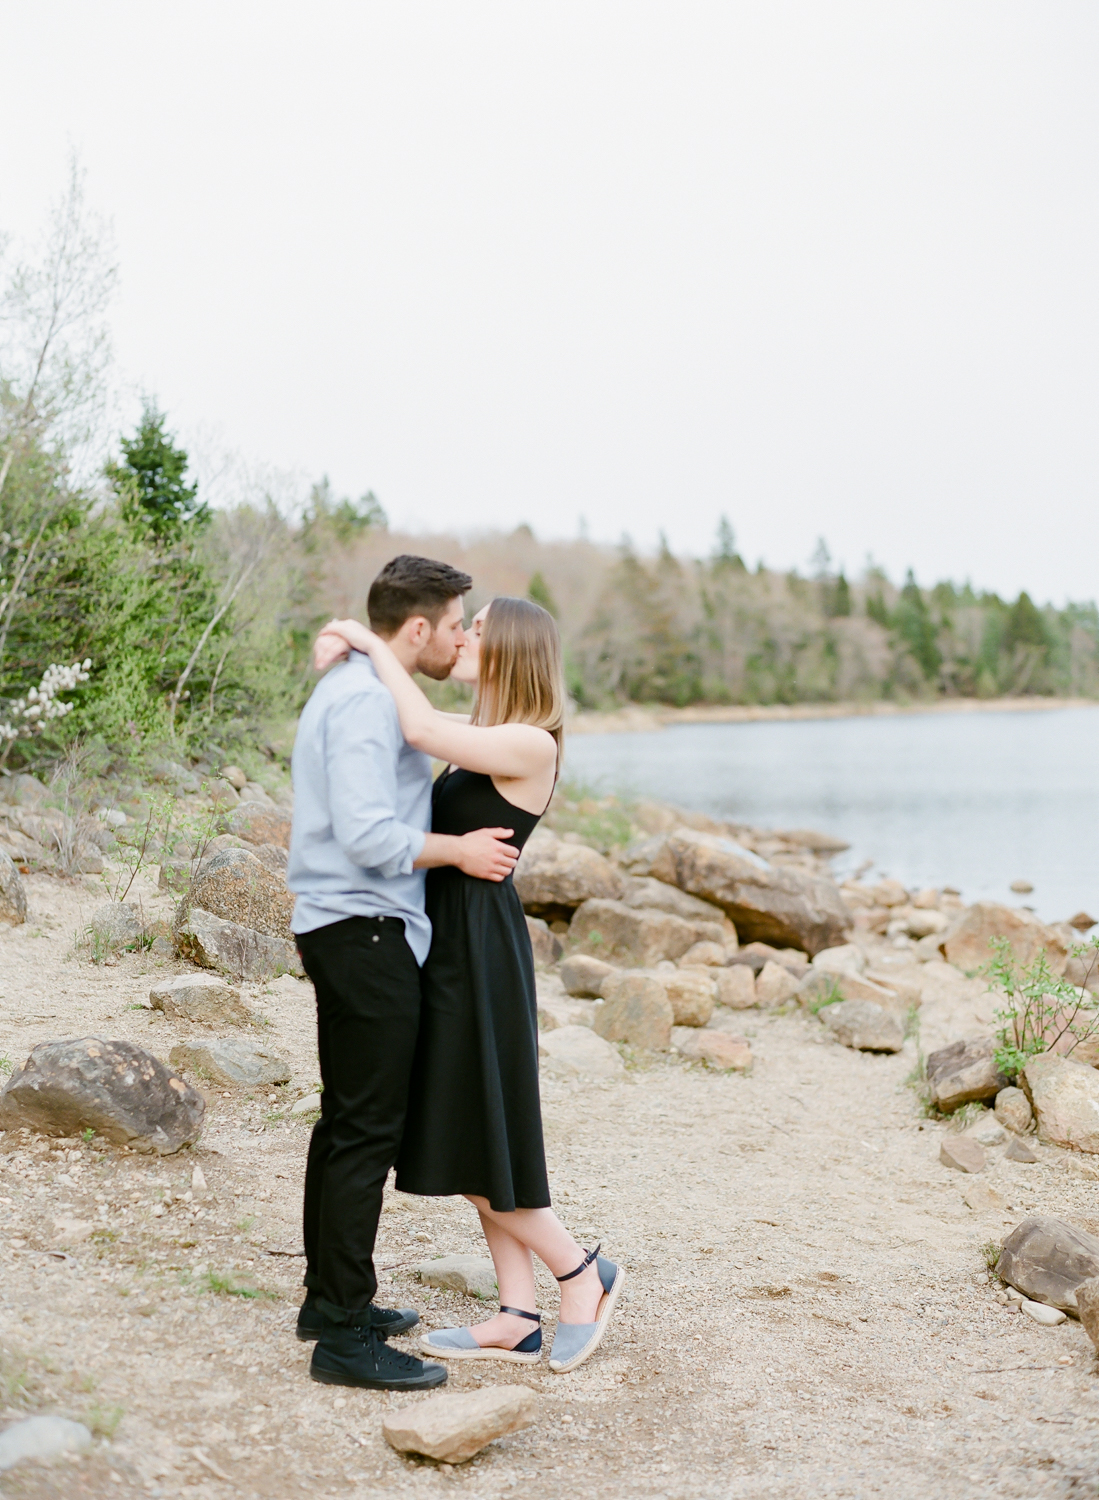 Jacqueline Anne Photography - Maddie and Ryan - Long Lake Engagement Session in Halifax-51.jpg